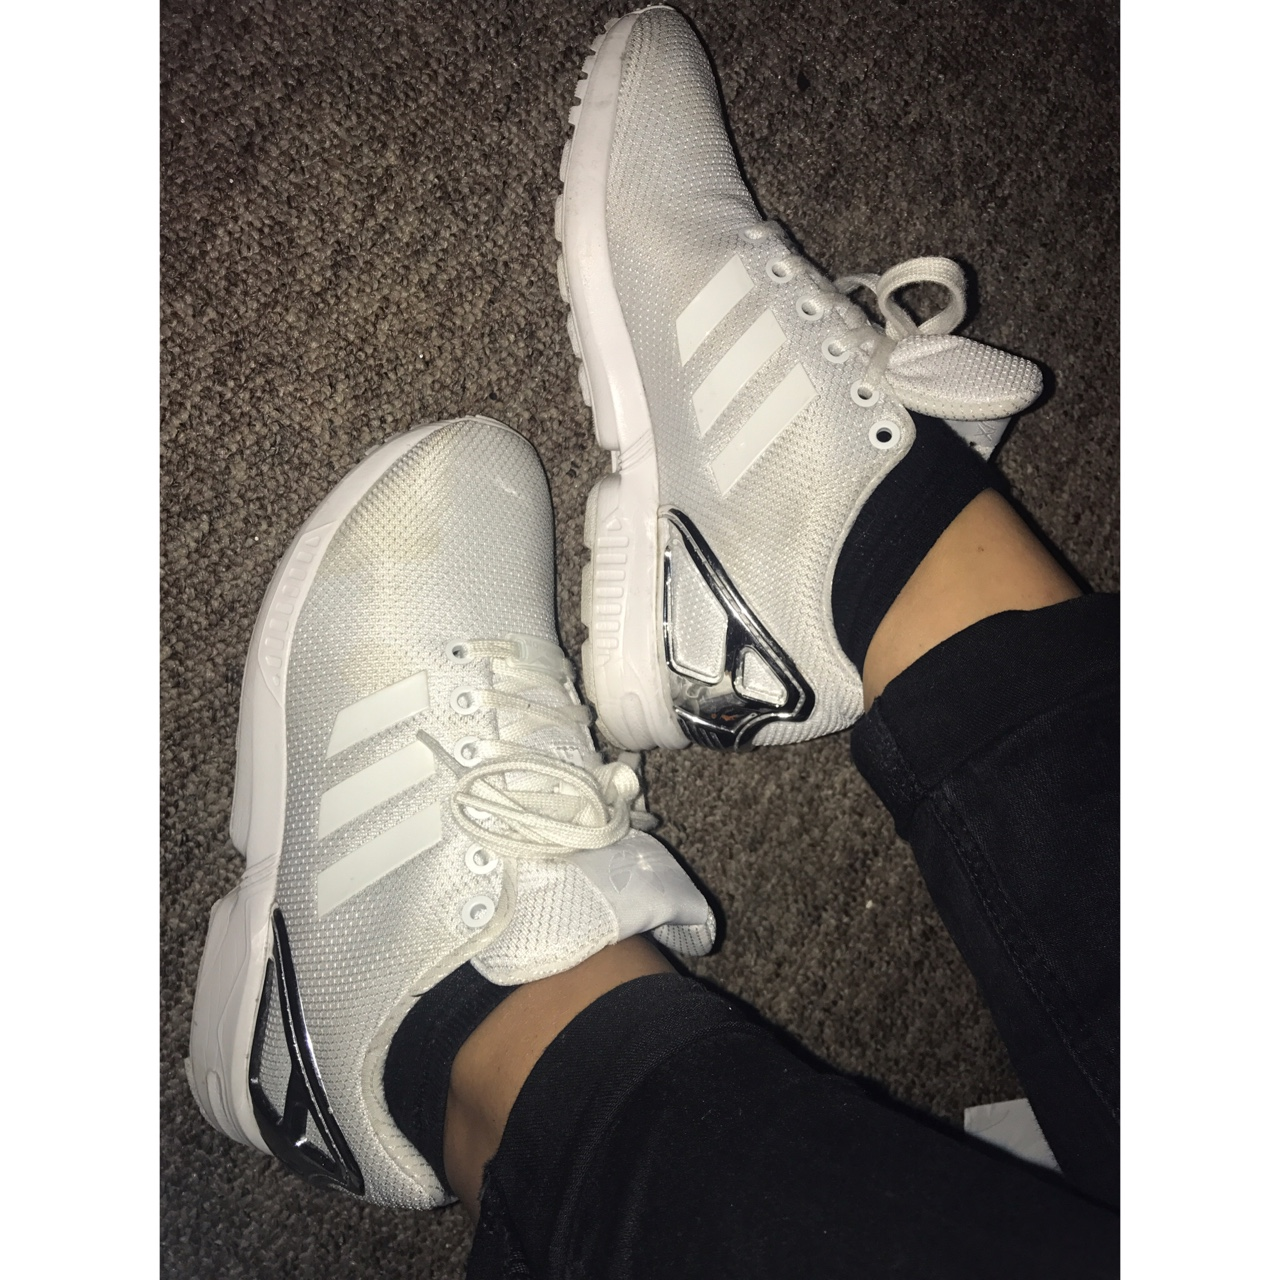 Whitesilver limited edition Adidas ZX flux torsion, Depop